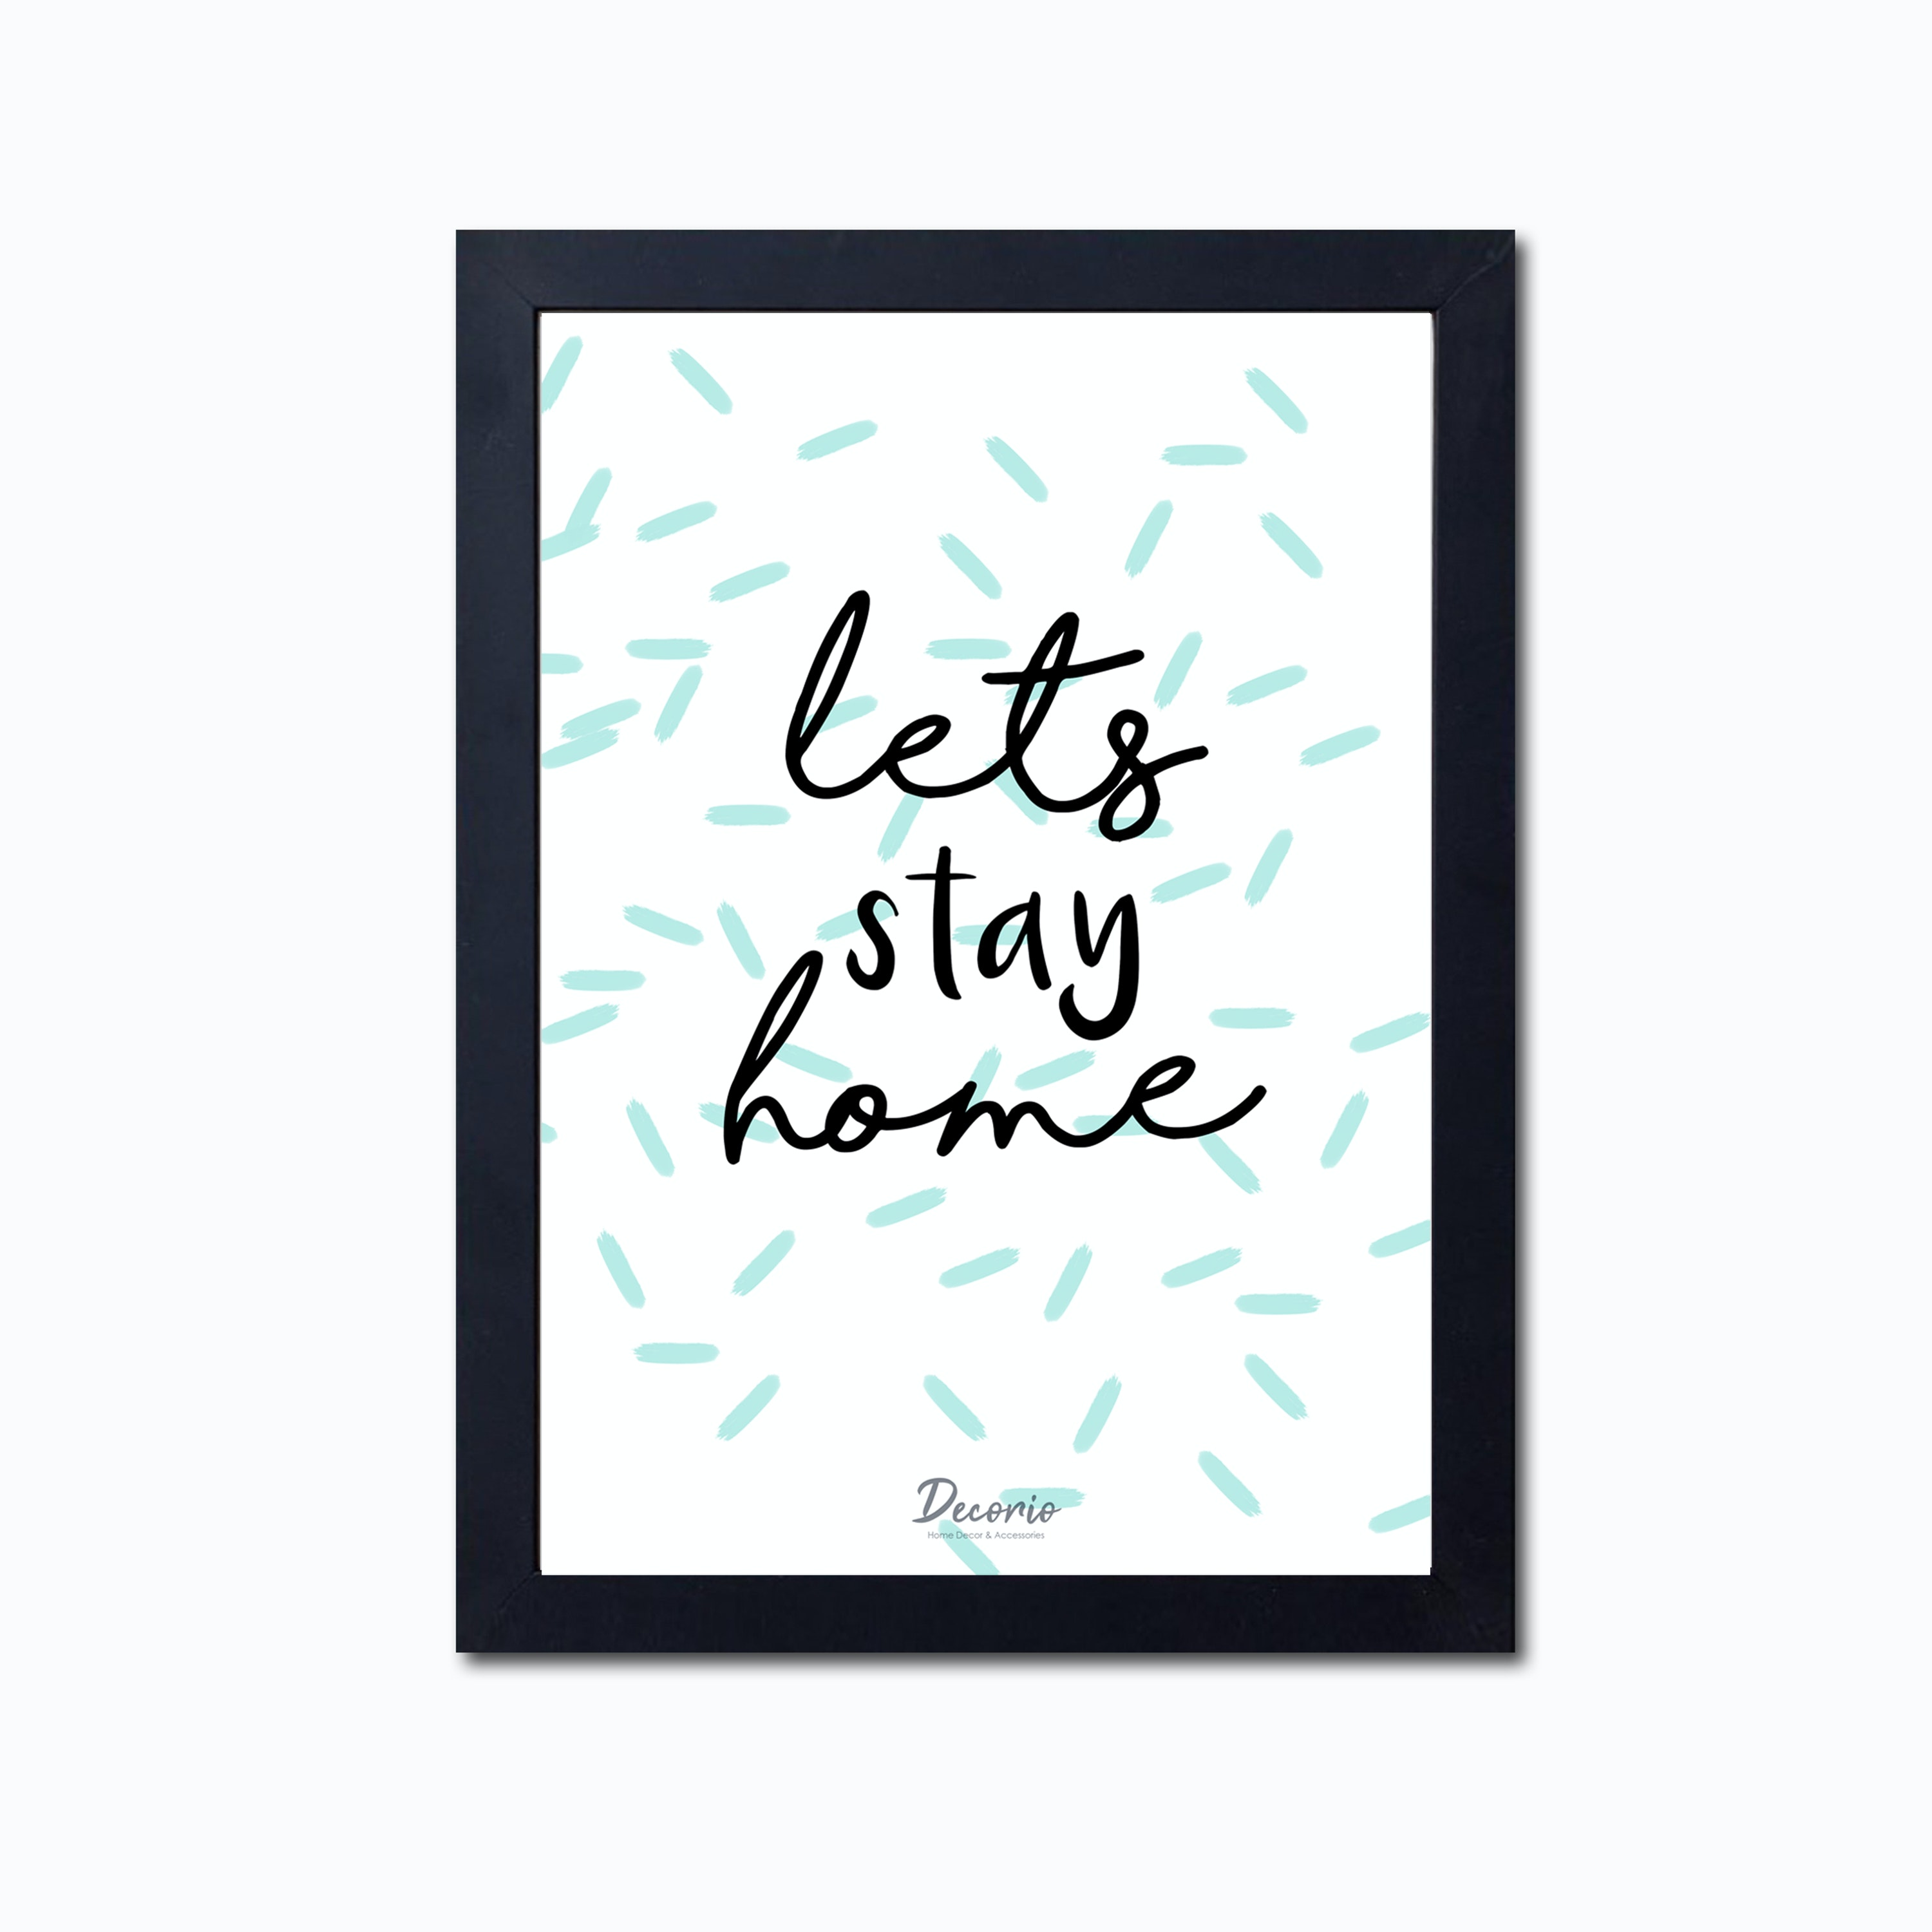 Decorio Art Frame - Stay Home A3